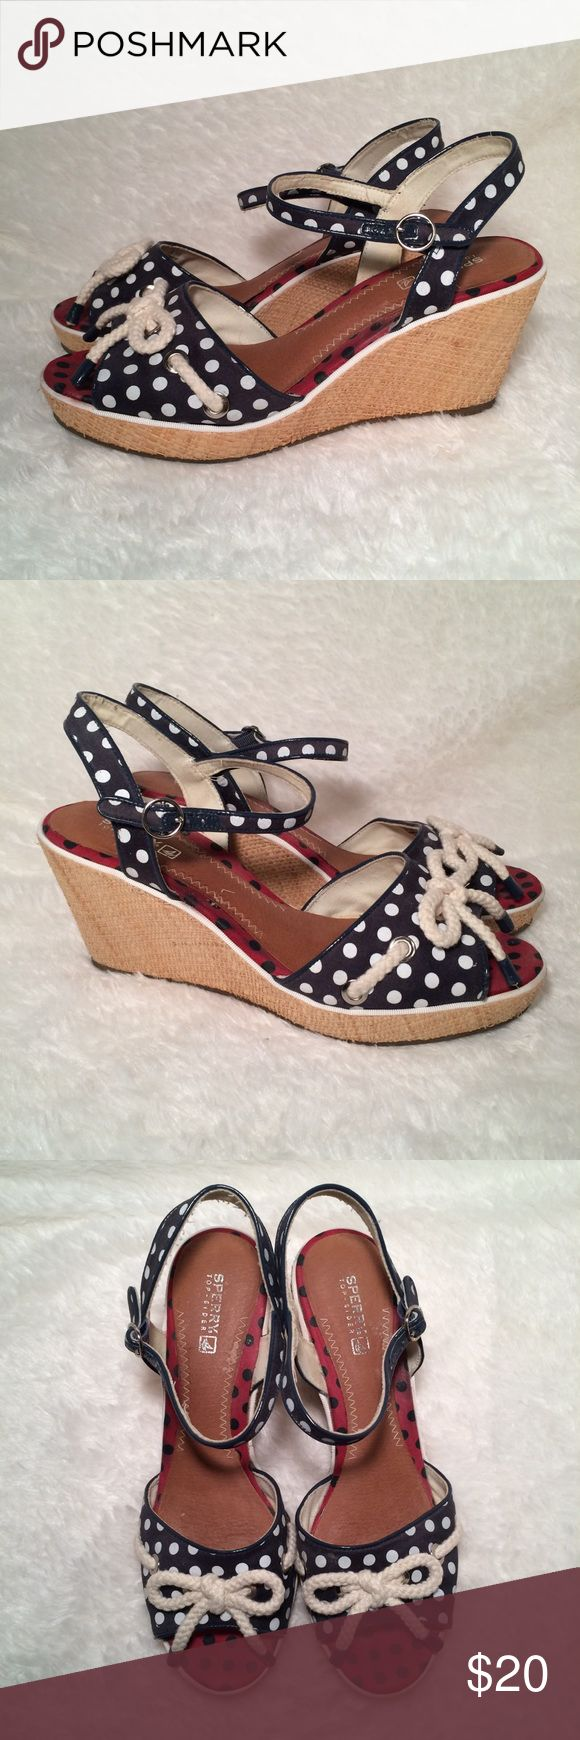 Last Day SALE! Sperry Top-Sider Wedges In very nice condition. The color is navy blue and cream. Sperry Top-Sider Shoes Wedges